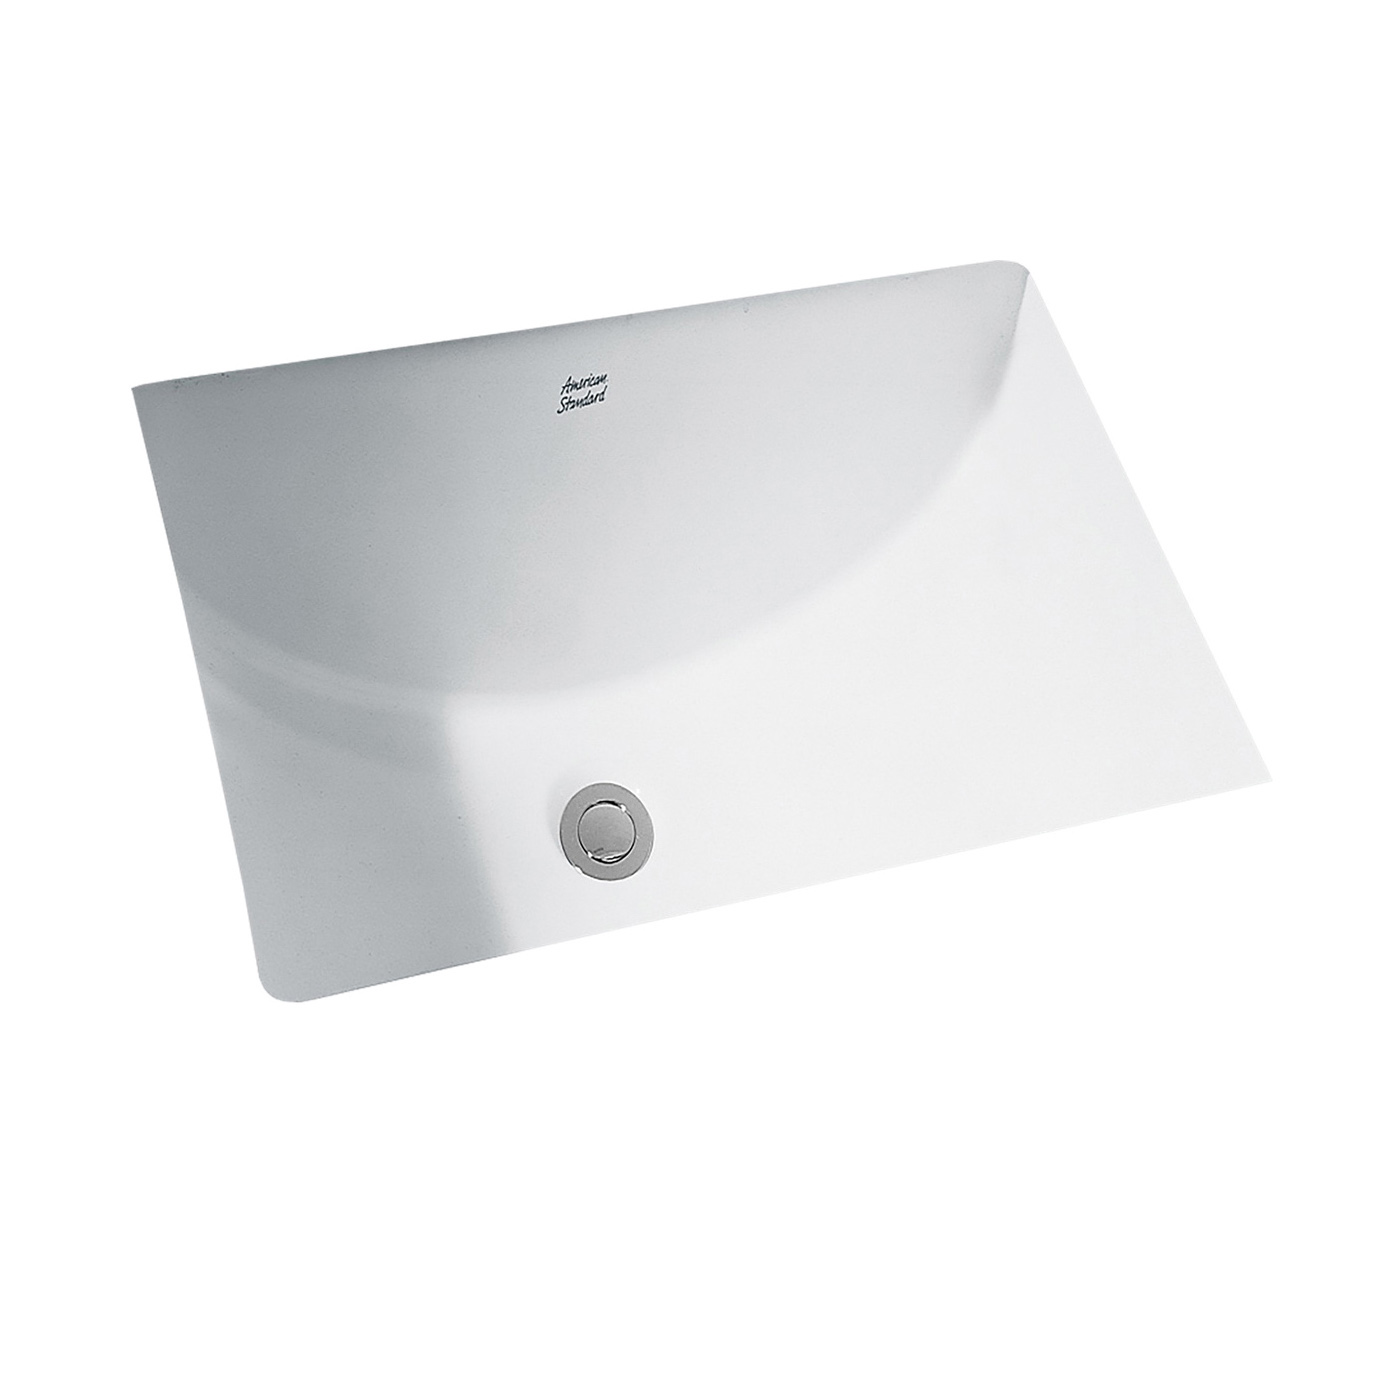 American Standard 0618.000.020 Studio™ Bathroom Sink With Front Overflow, Rectangular, 21-1/4 in W x 8-1/4 in D x 15-1/4 in H, Undercounter Mount, Vitreous China, White, Import